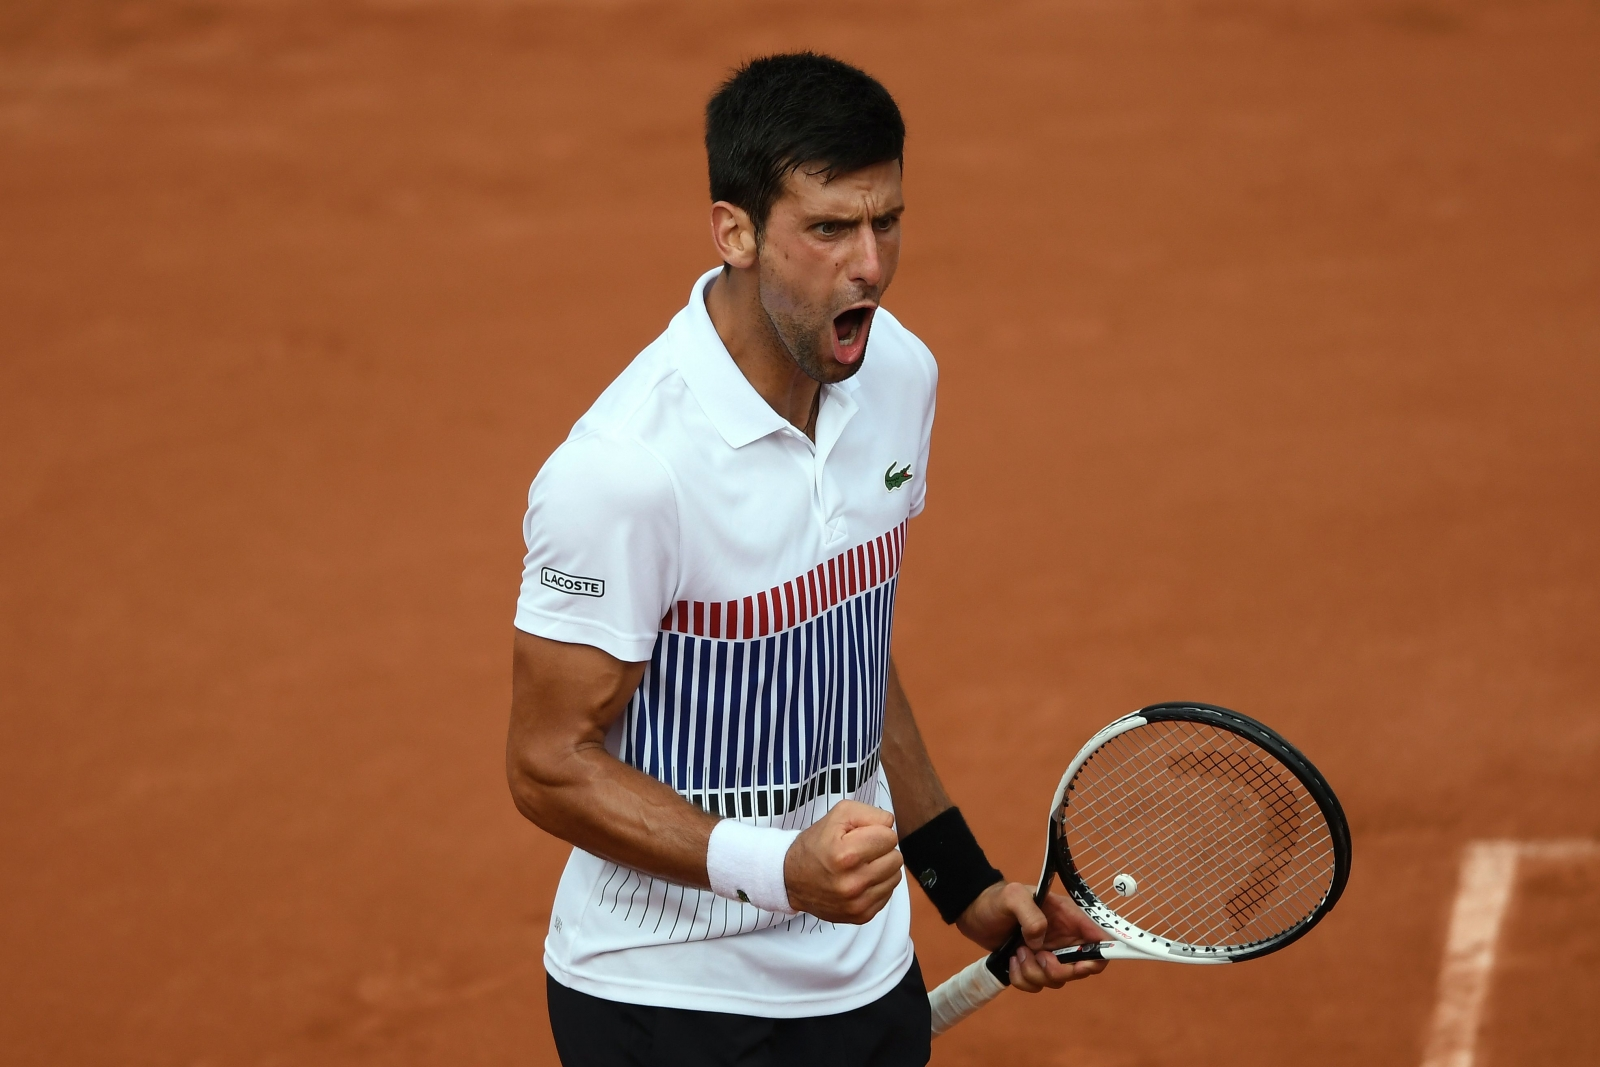 Novak Djokovic comes through tough test to make French Open fourth round